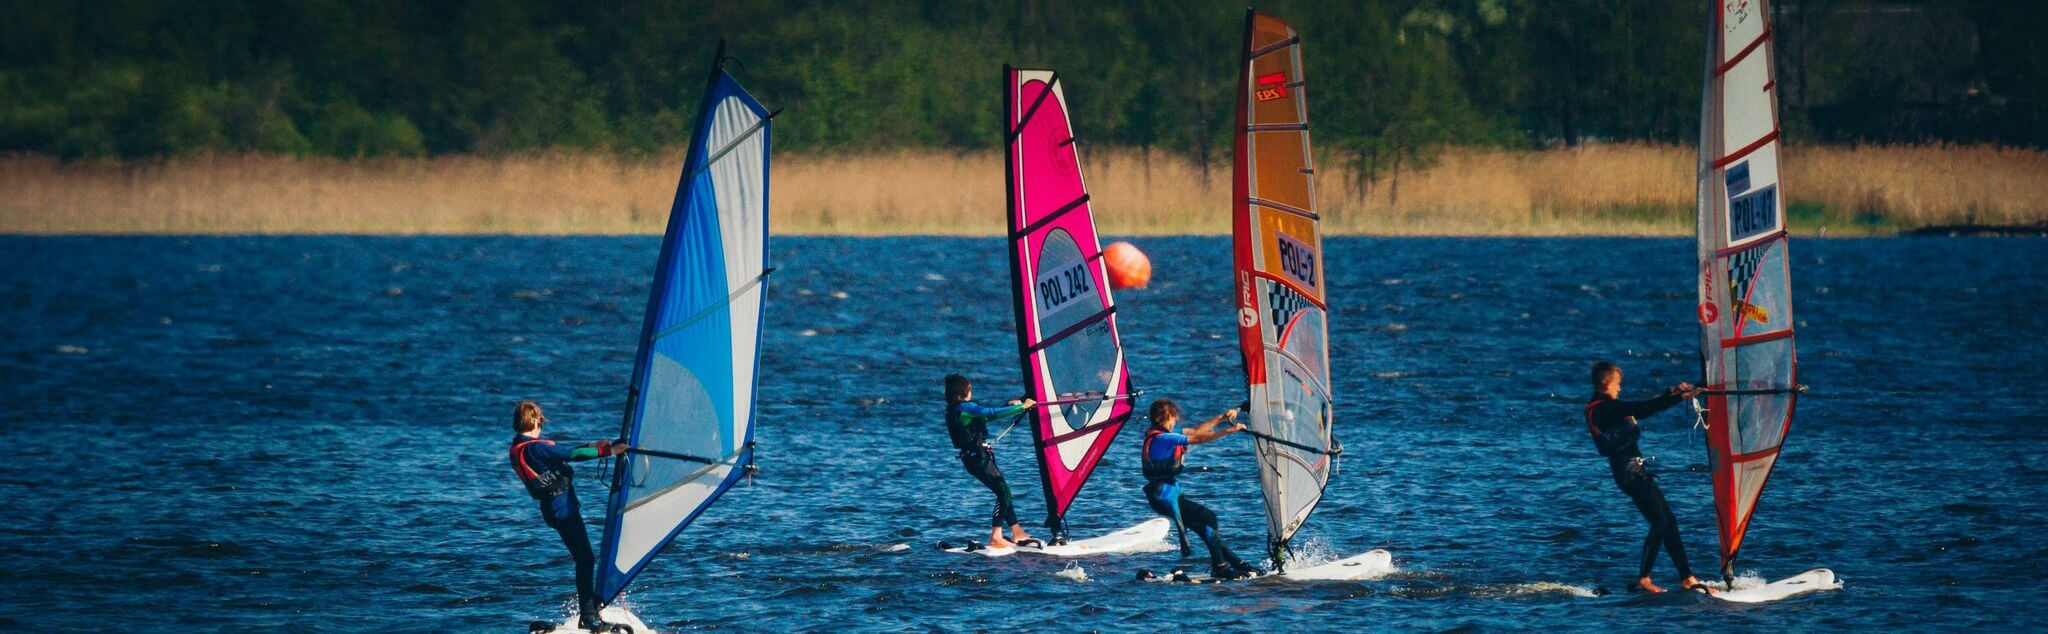 Windsurfing in Kent